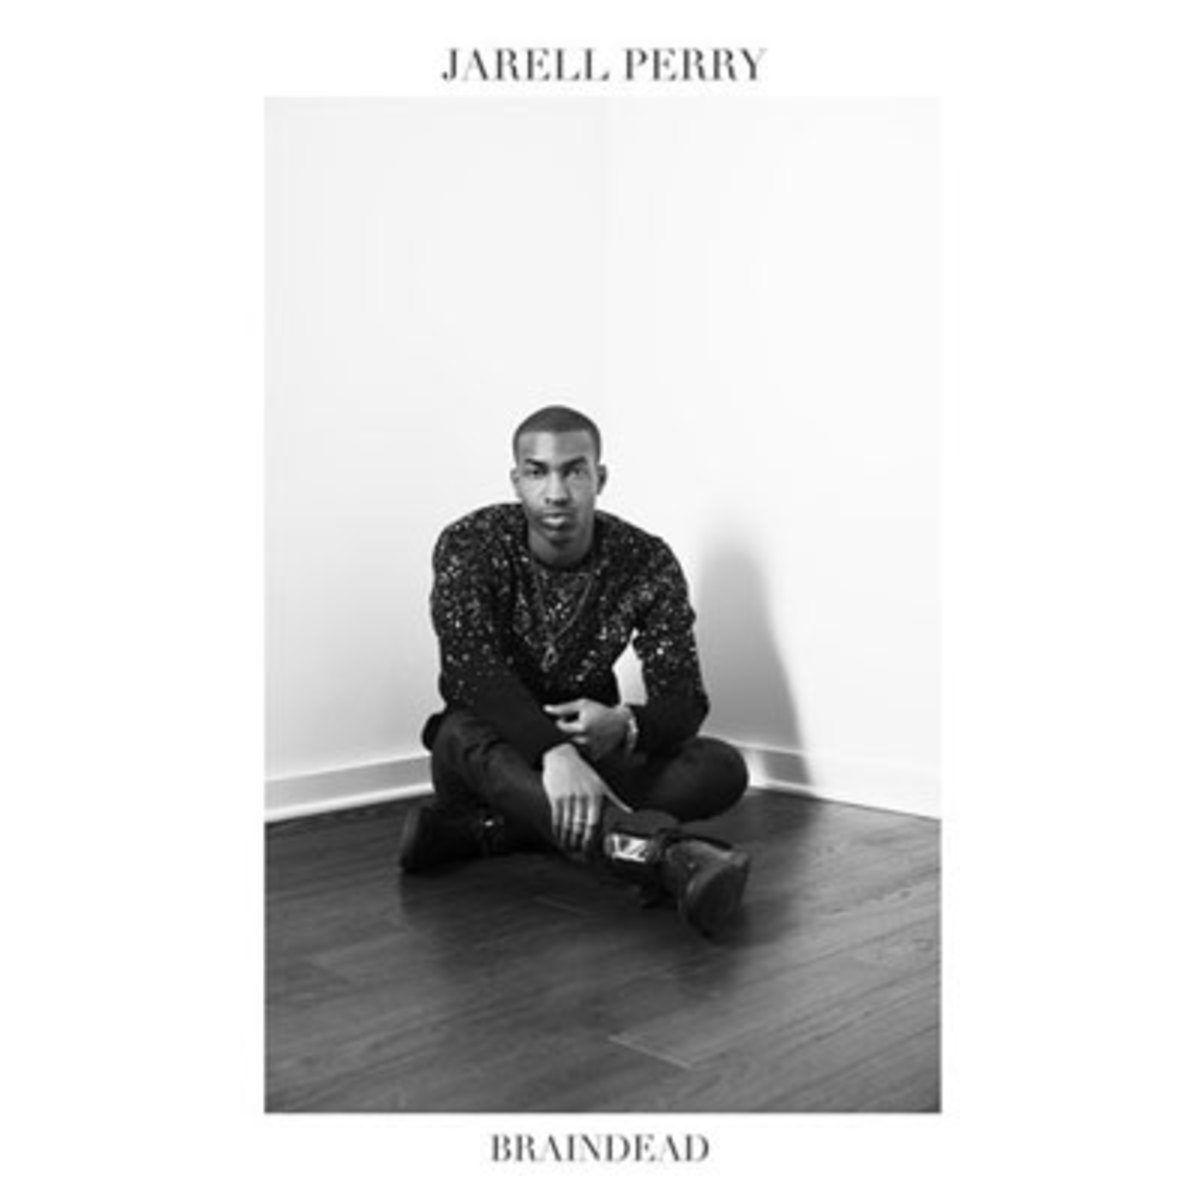 jarellperry-braindead.jpg